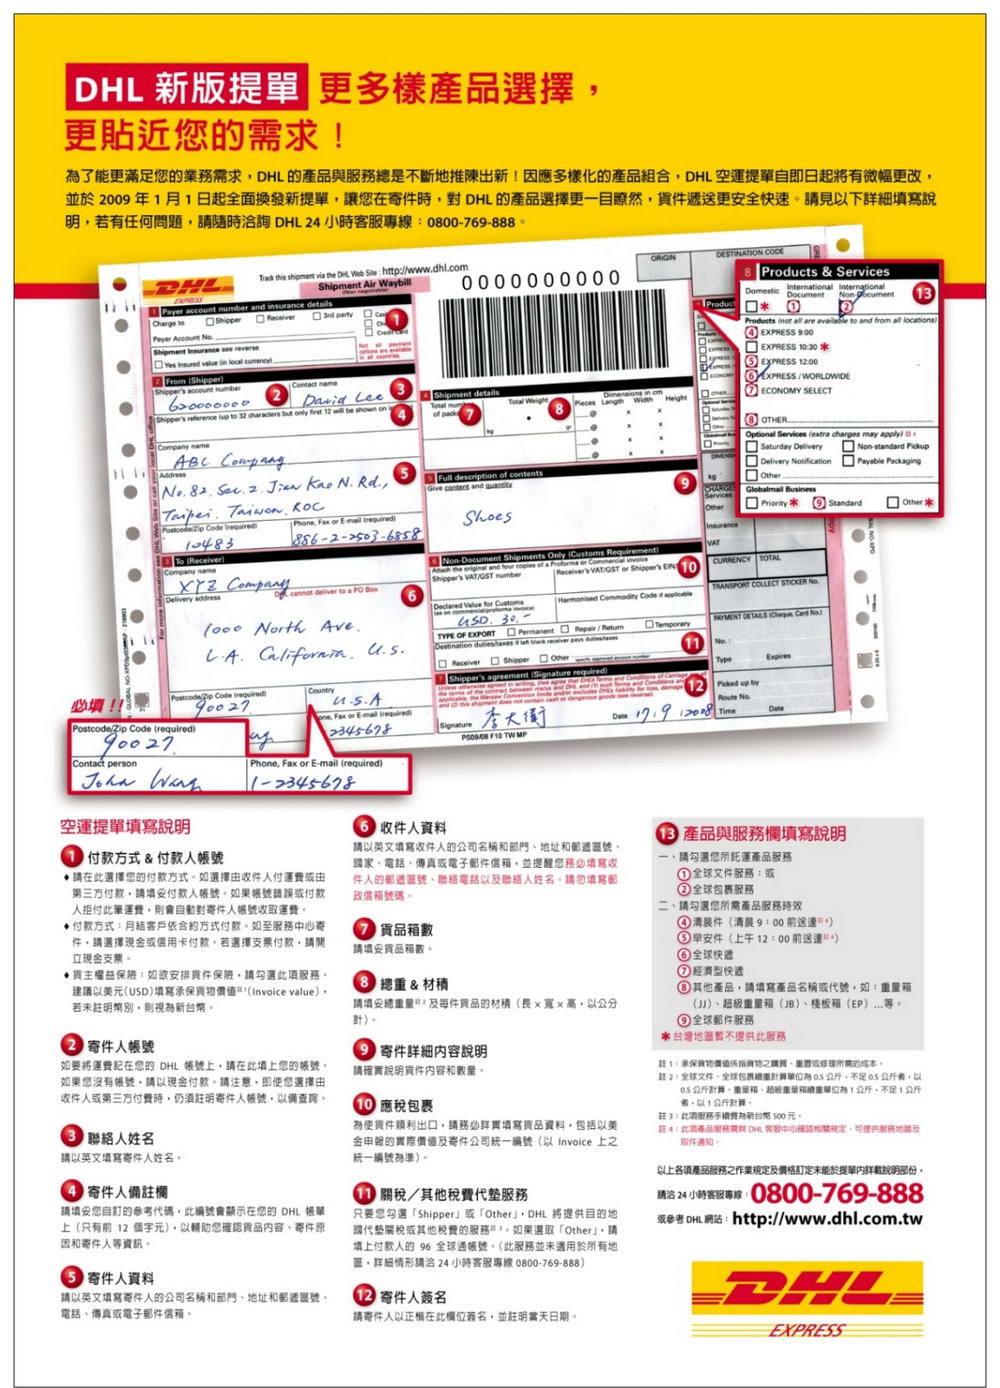 Bill Of Lading Form Dhl